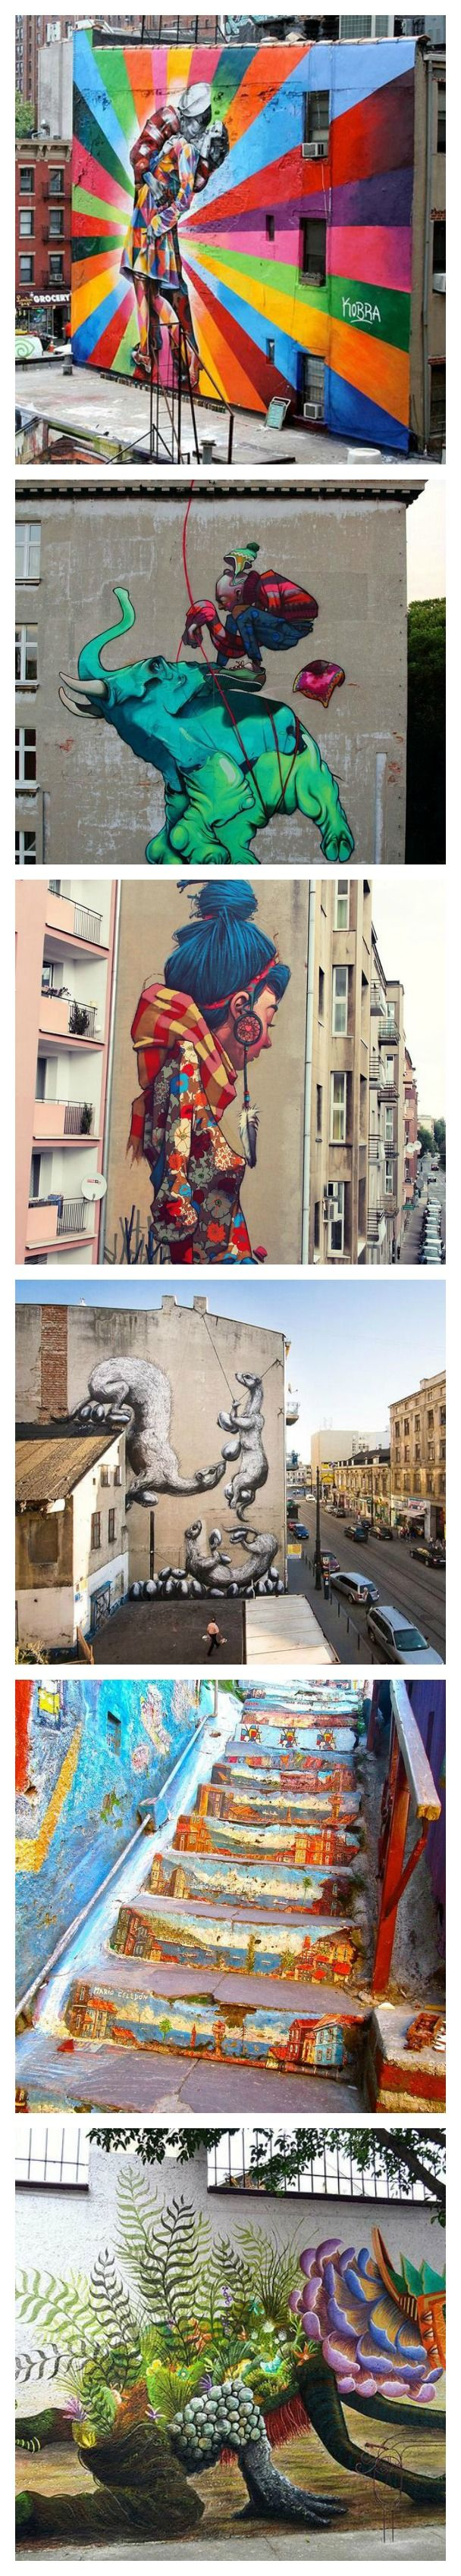 17 Insanely Cool Street Art You Just Have To See. Seriously, why can't we have this kind of art on our neighborhood? See the full list here.